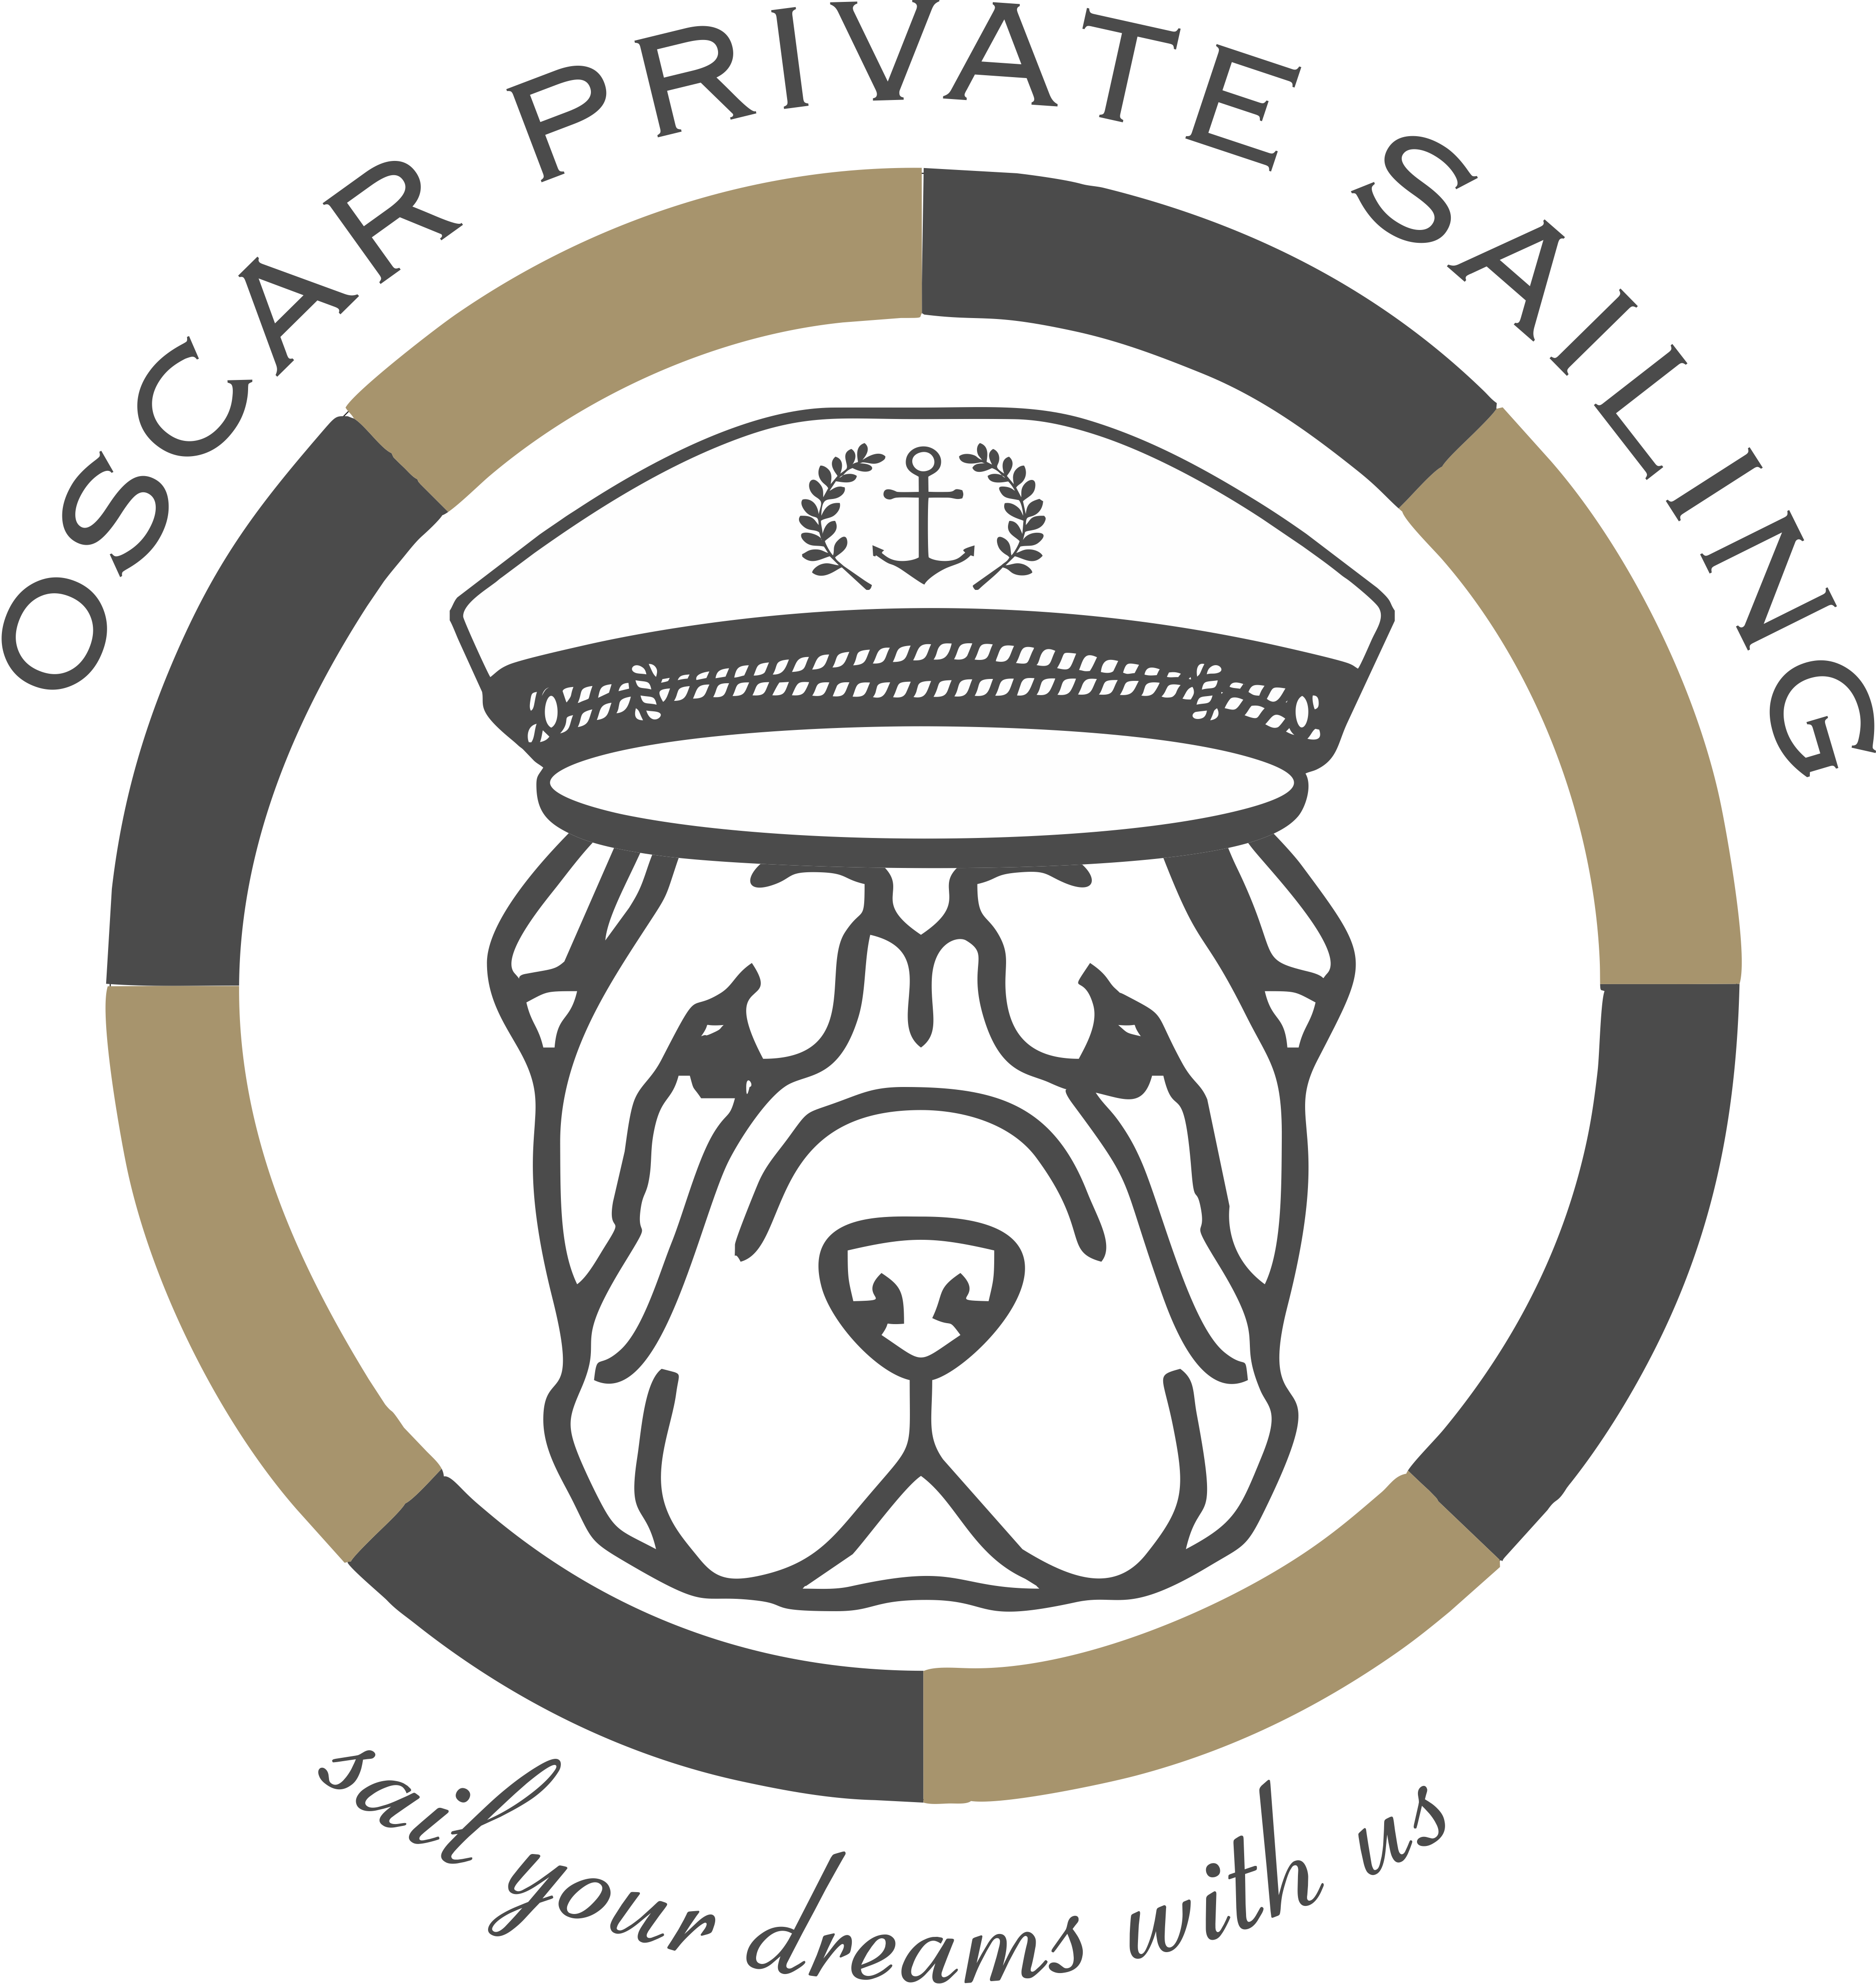 OSCAR PRIVATE SAILING